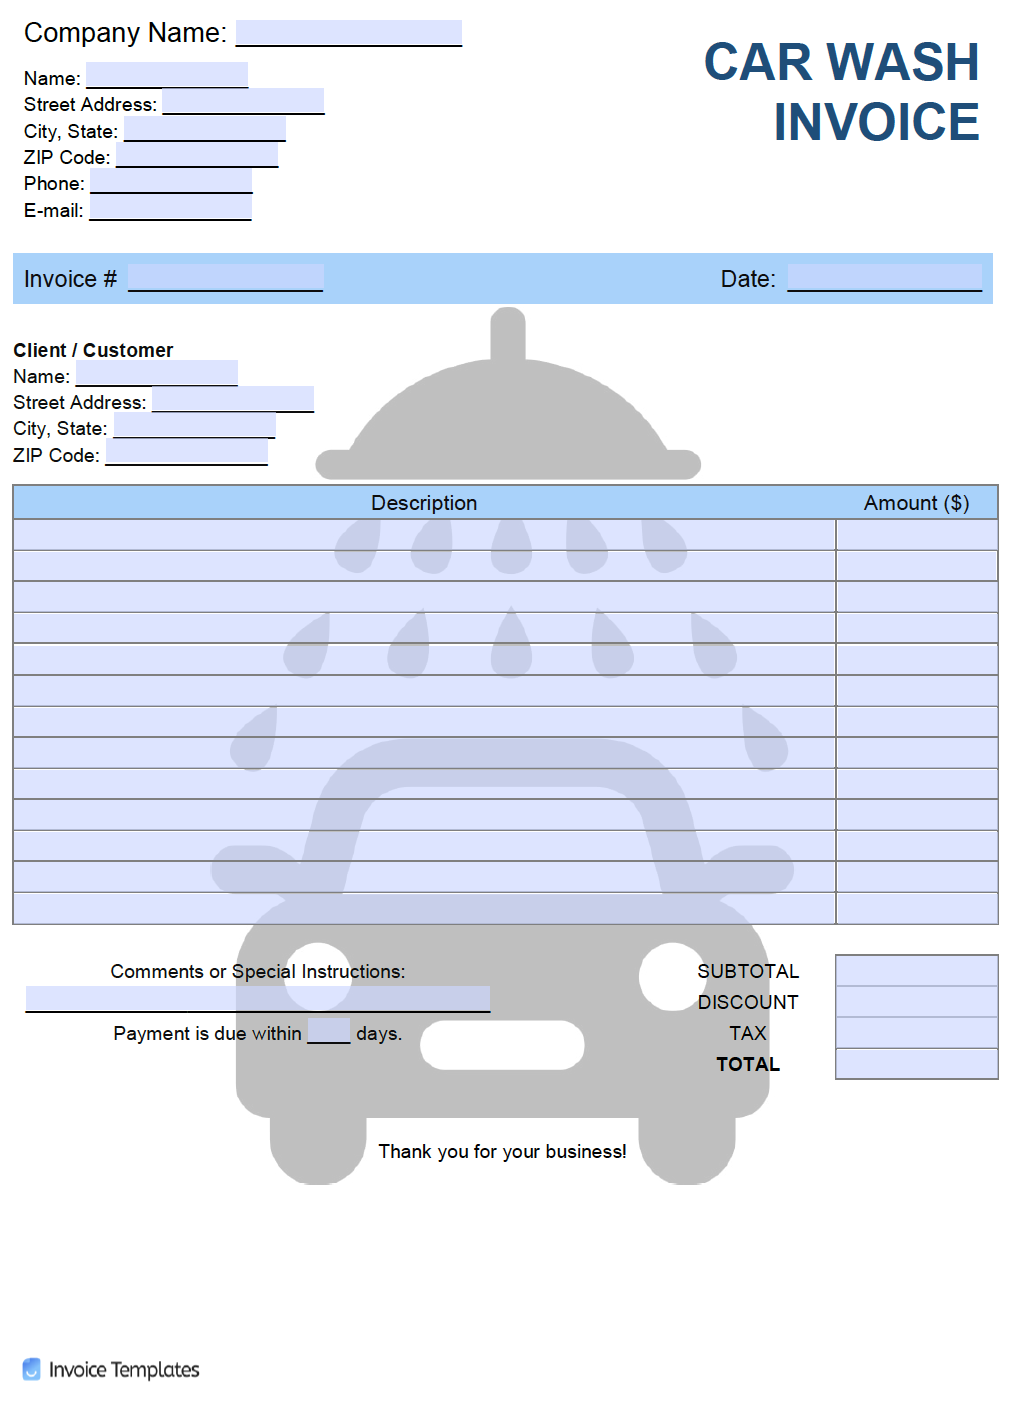 Free Car Wash Invoice Template Pdf Word Excel